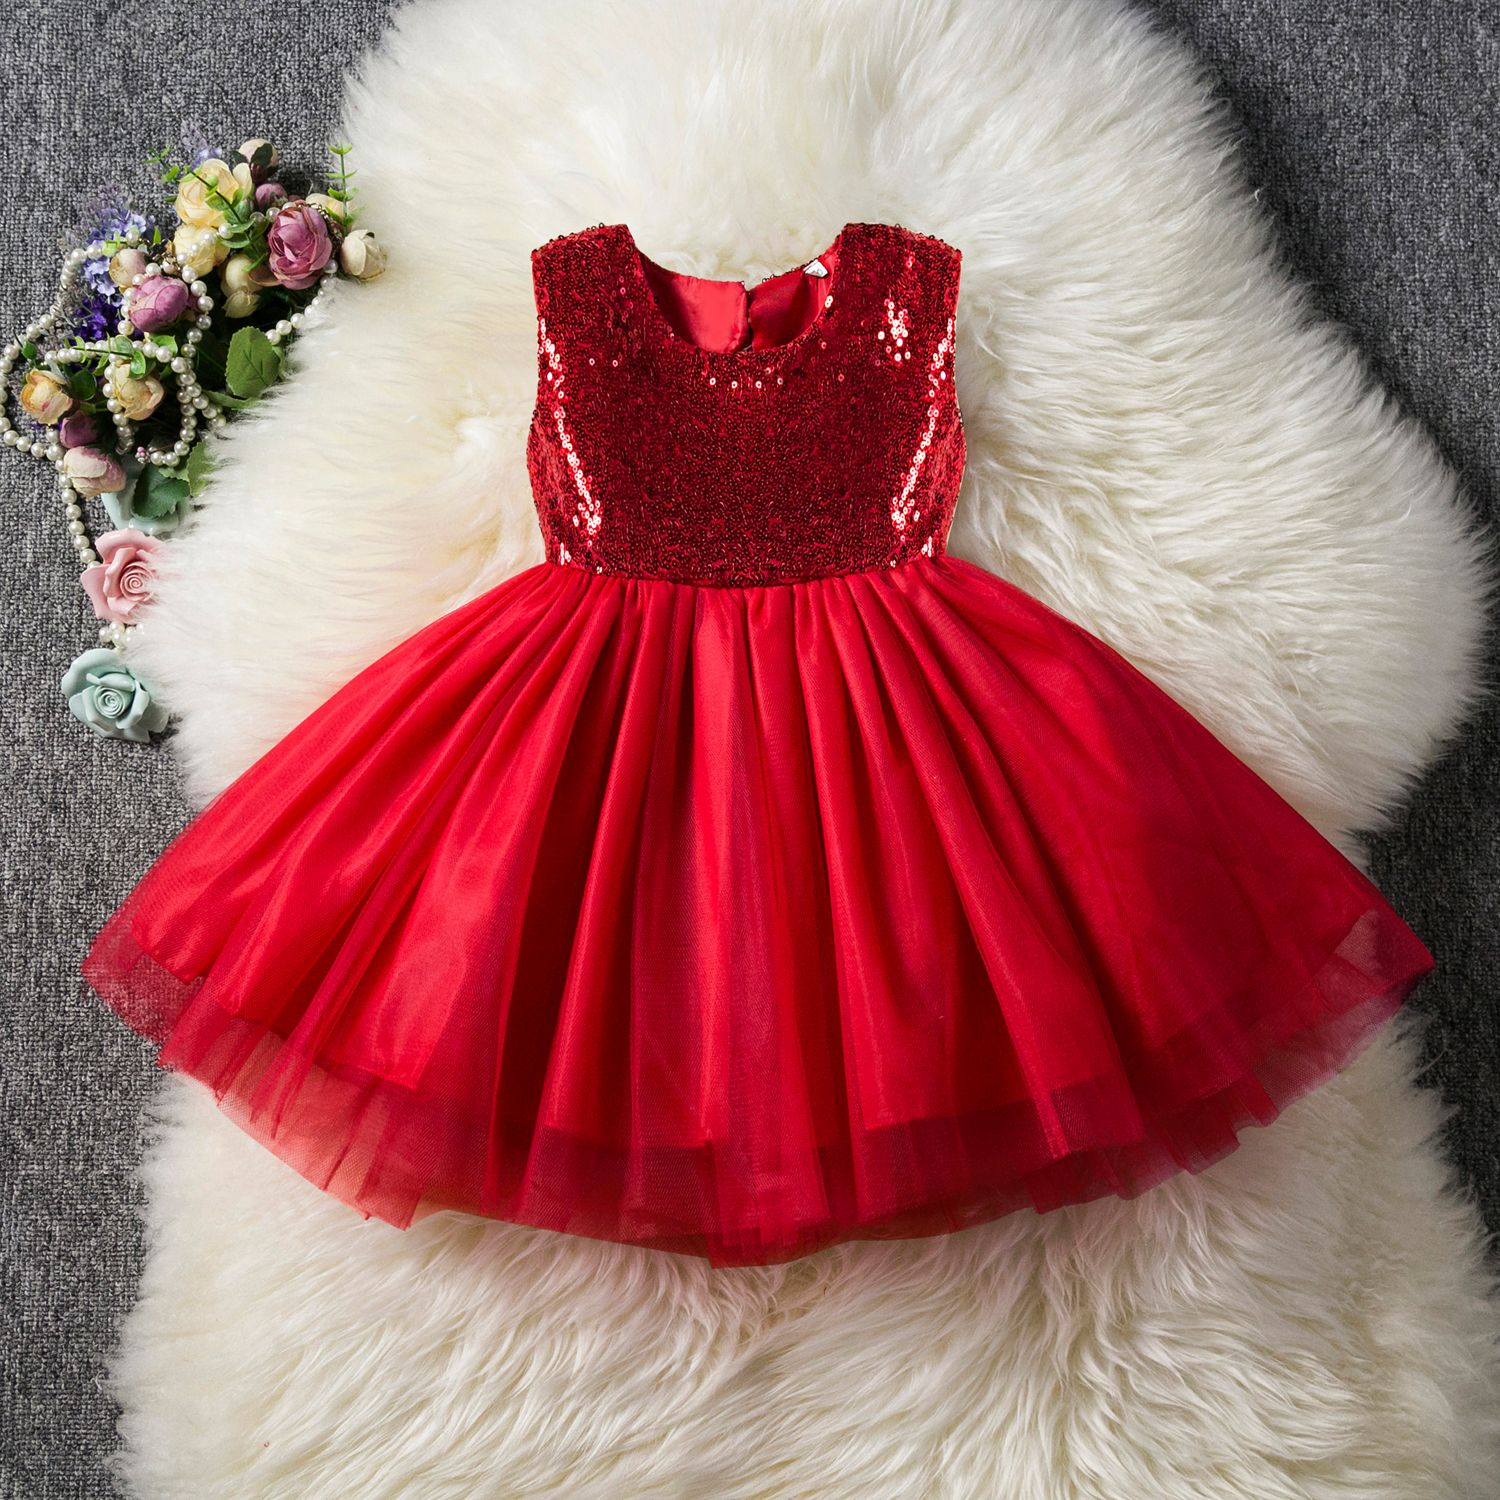 Baby/ Toddler Girl's Sequin Decor Tulle Party Dress #babygirlpartydresses